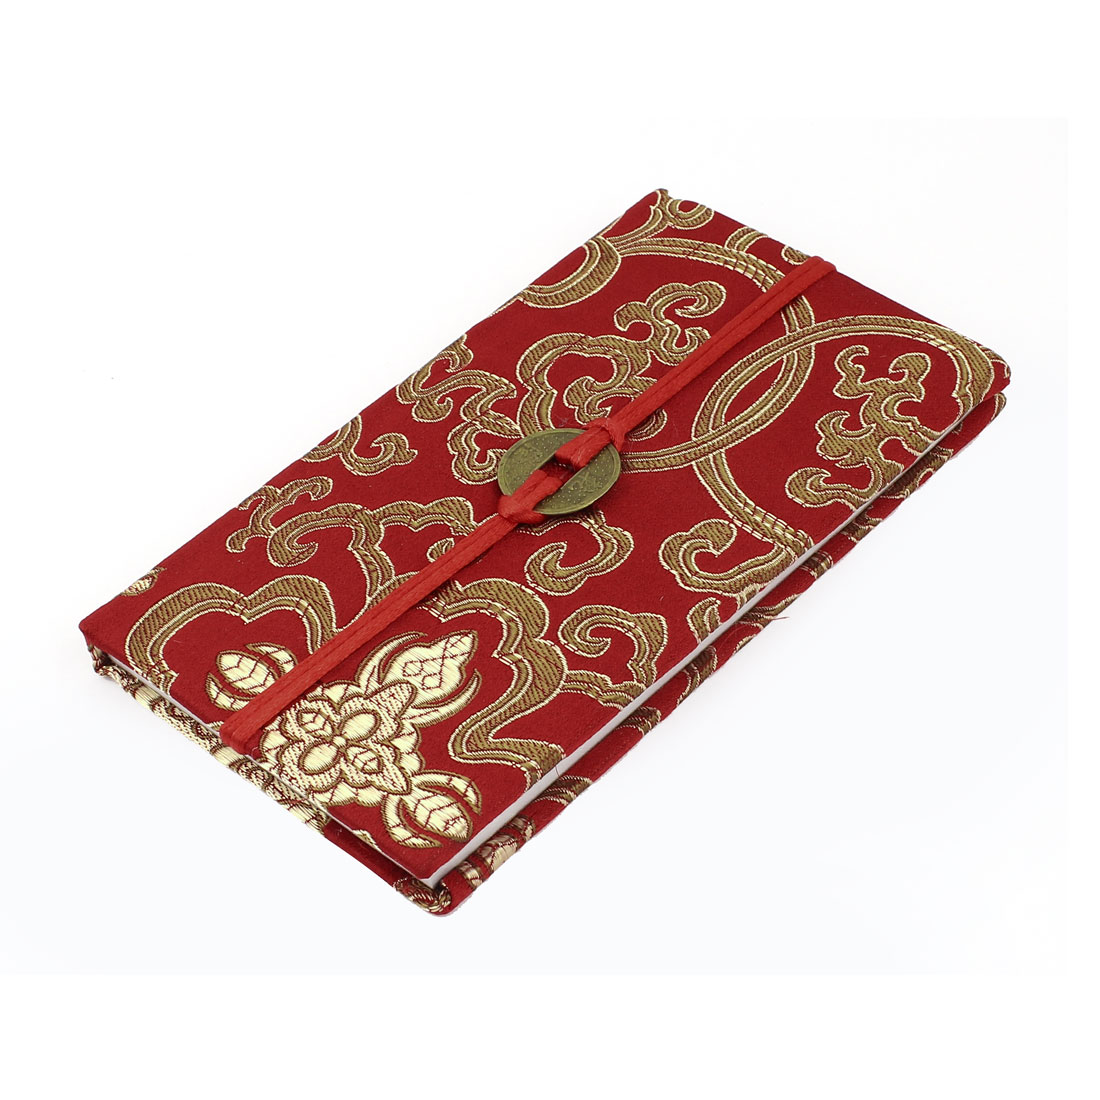 Embroidery Floral Pattern Nylon Coated Copper Coin String Decor Memo Book Notepad Red Gold Tone